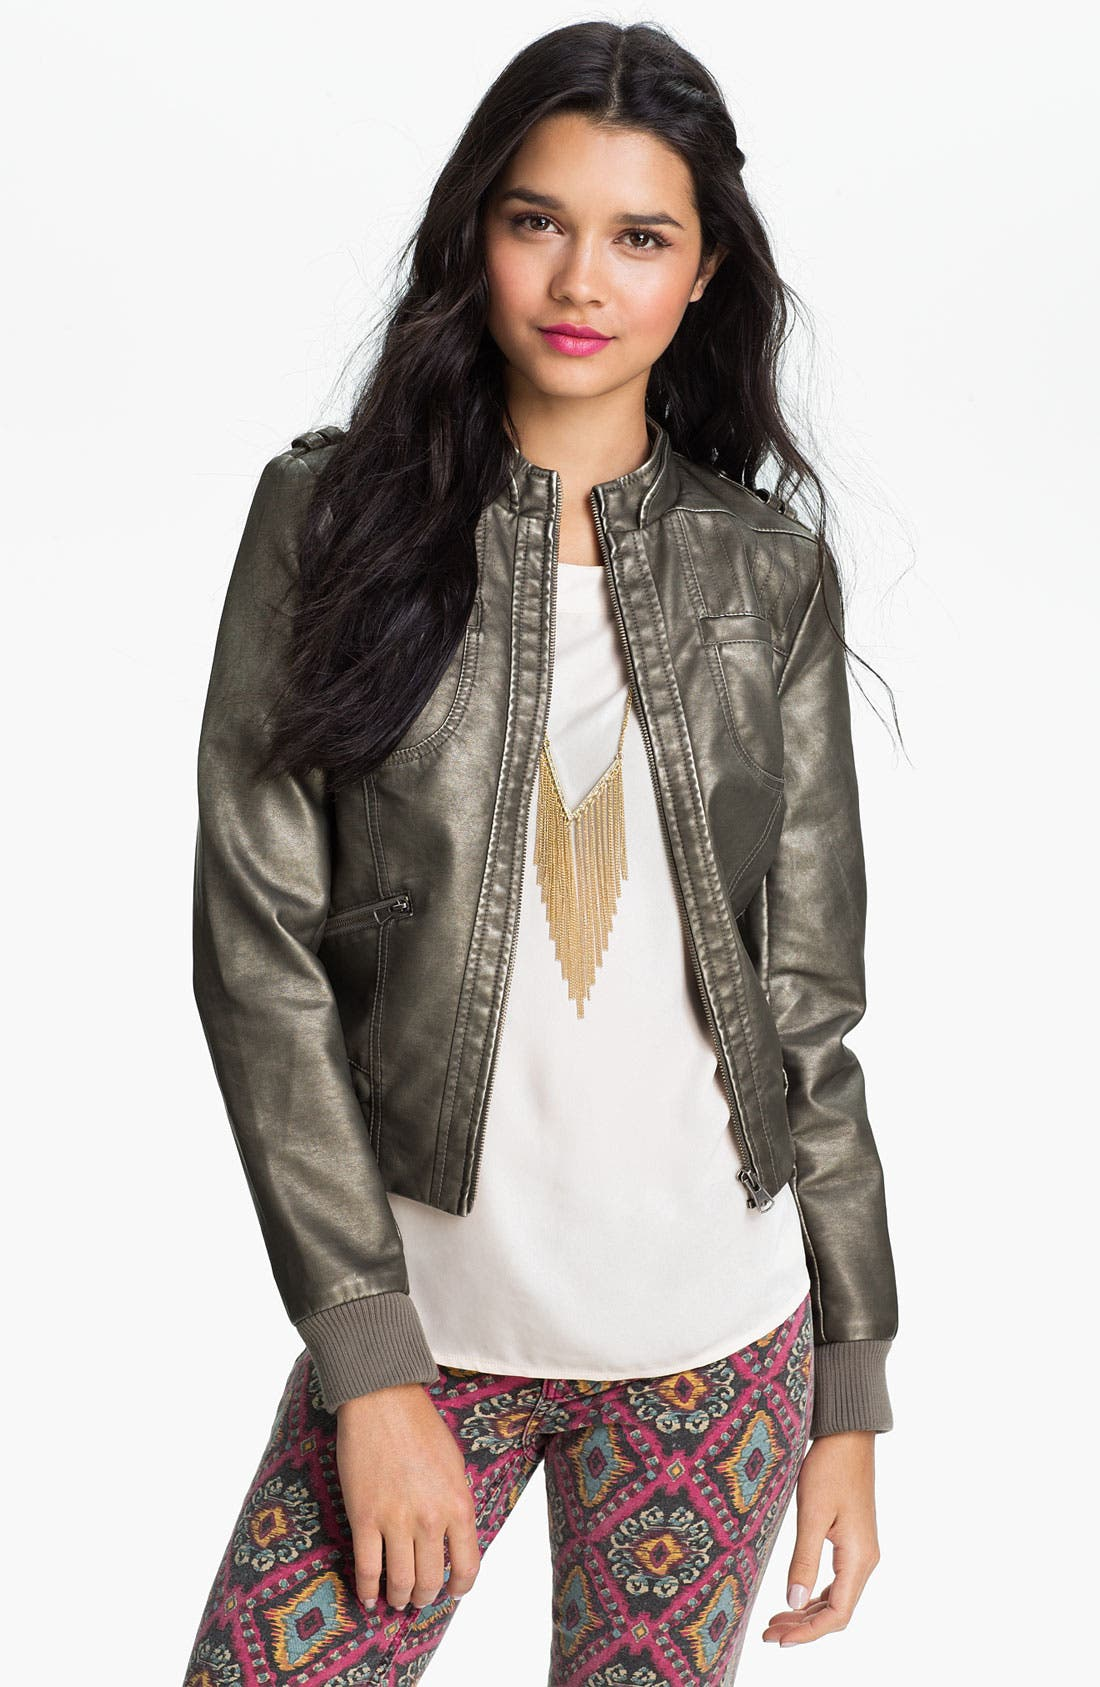 Alternate Image 1 Selected - Collection B Metallic Faux Leather Moto Jacket (Juniors)